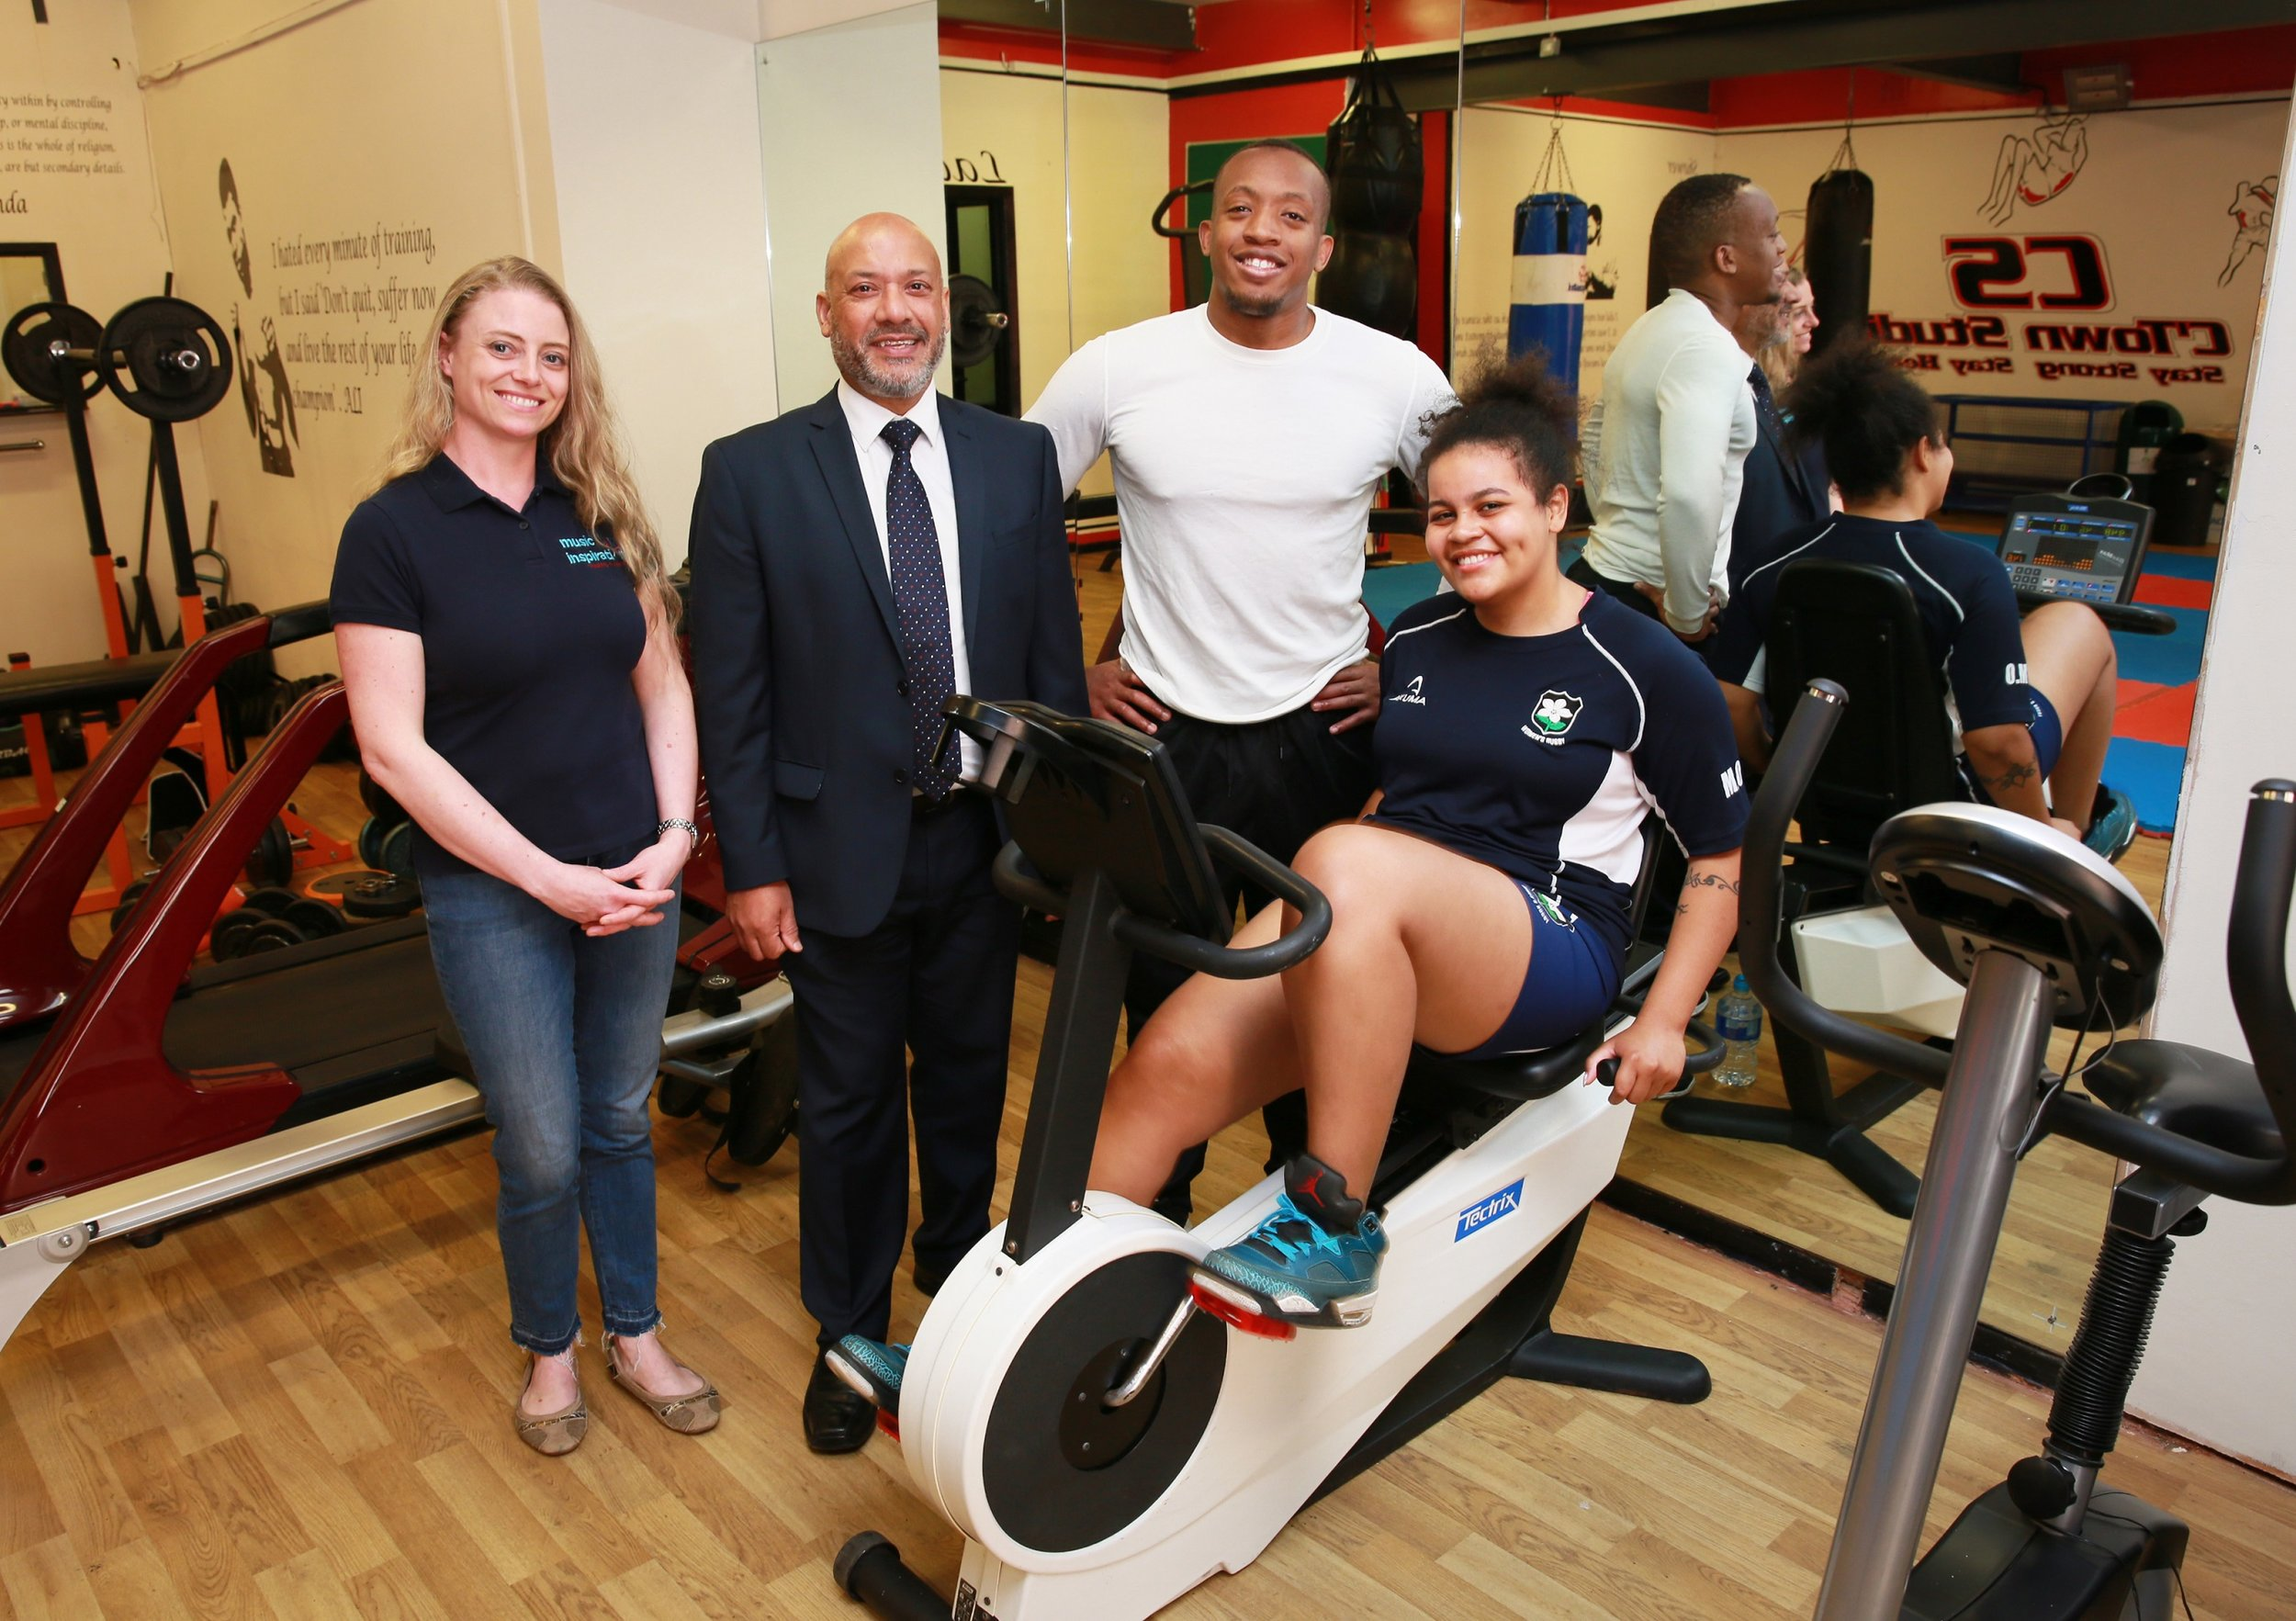 Under the watchful eye of C'Town Studio owner Michael Kamara, Marie Obirigya passes on some workout tips to Inspirations Central owner Ruth Douglas and Unity Homes and Enterprise chief executive Ali Akbor